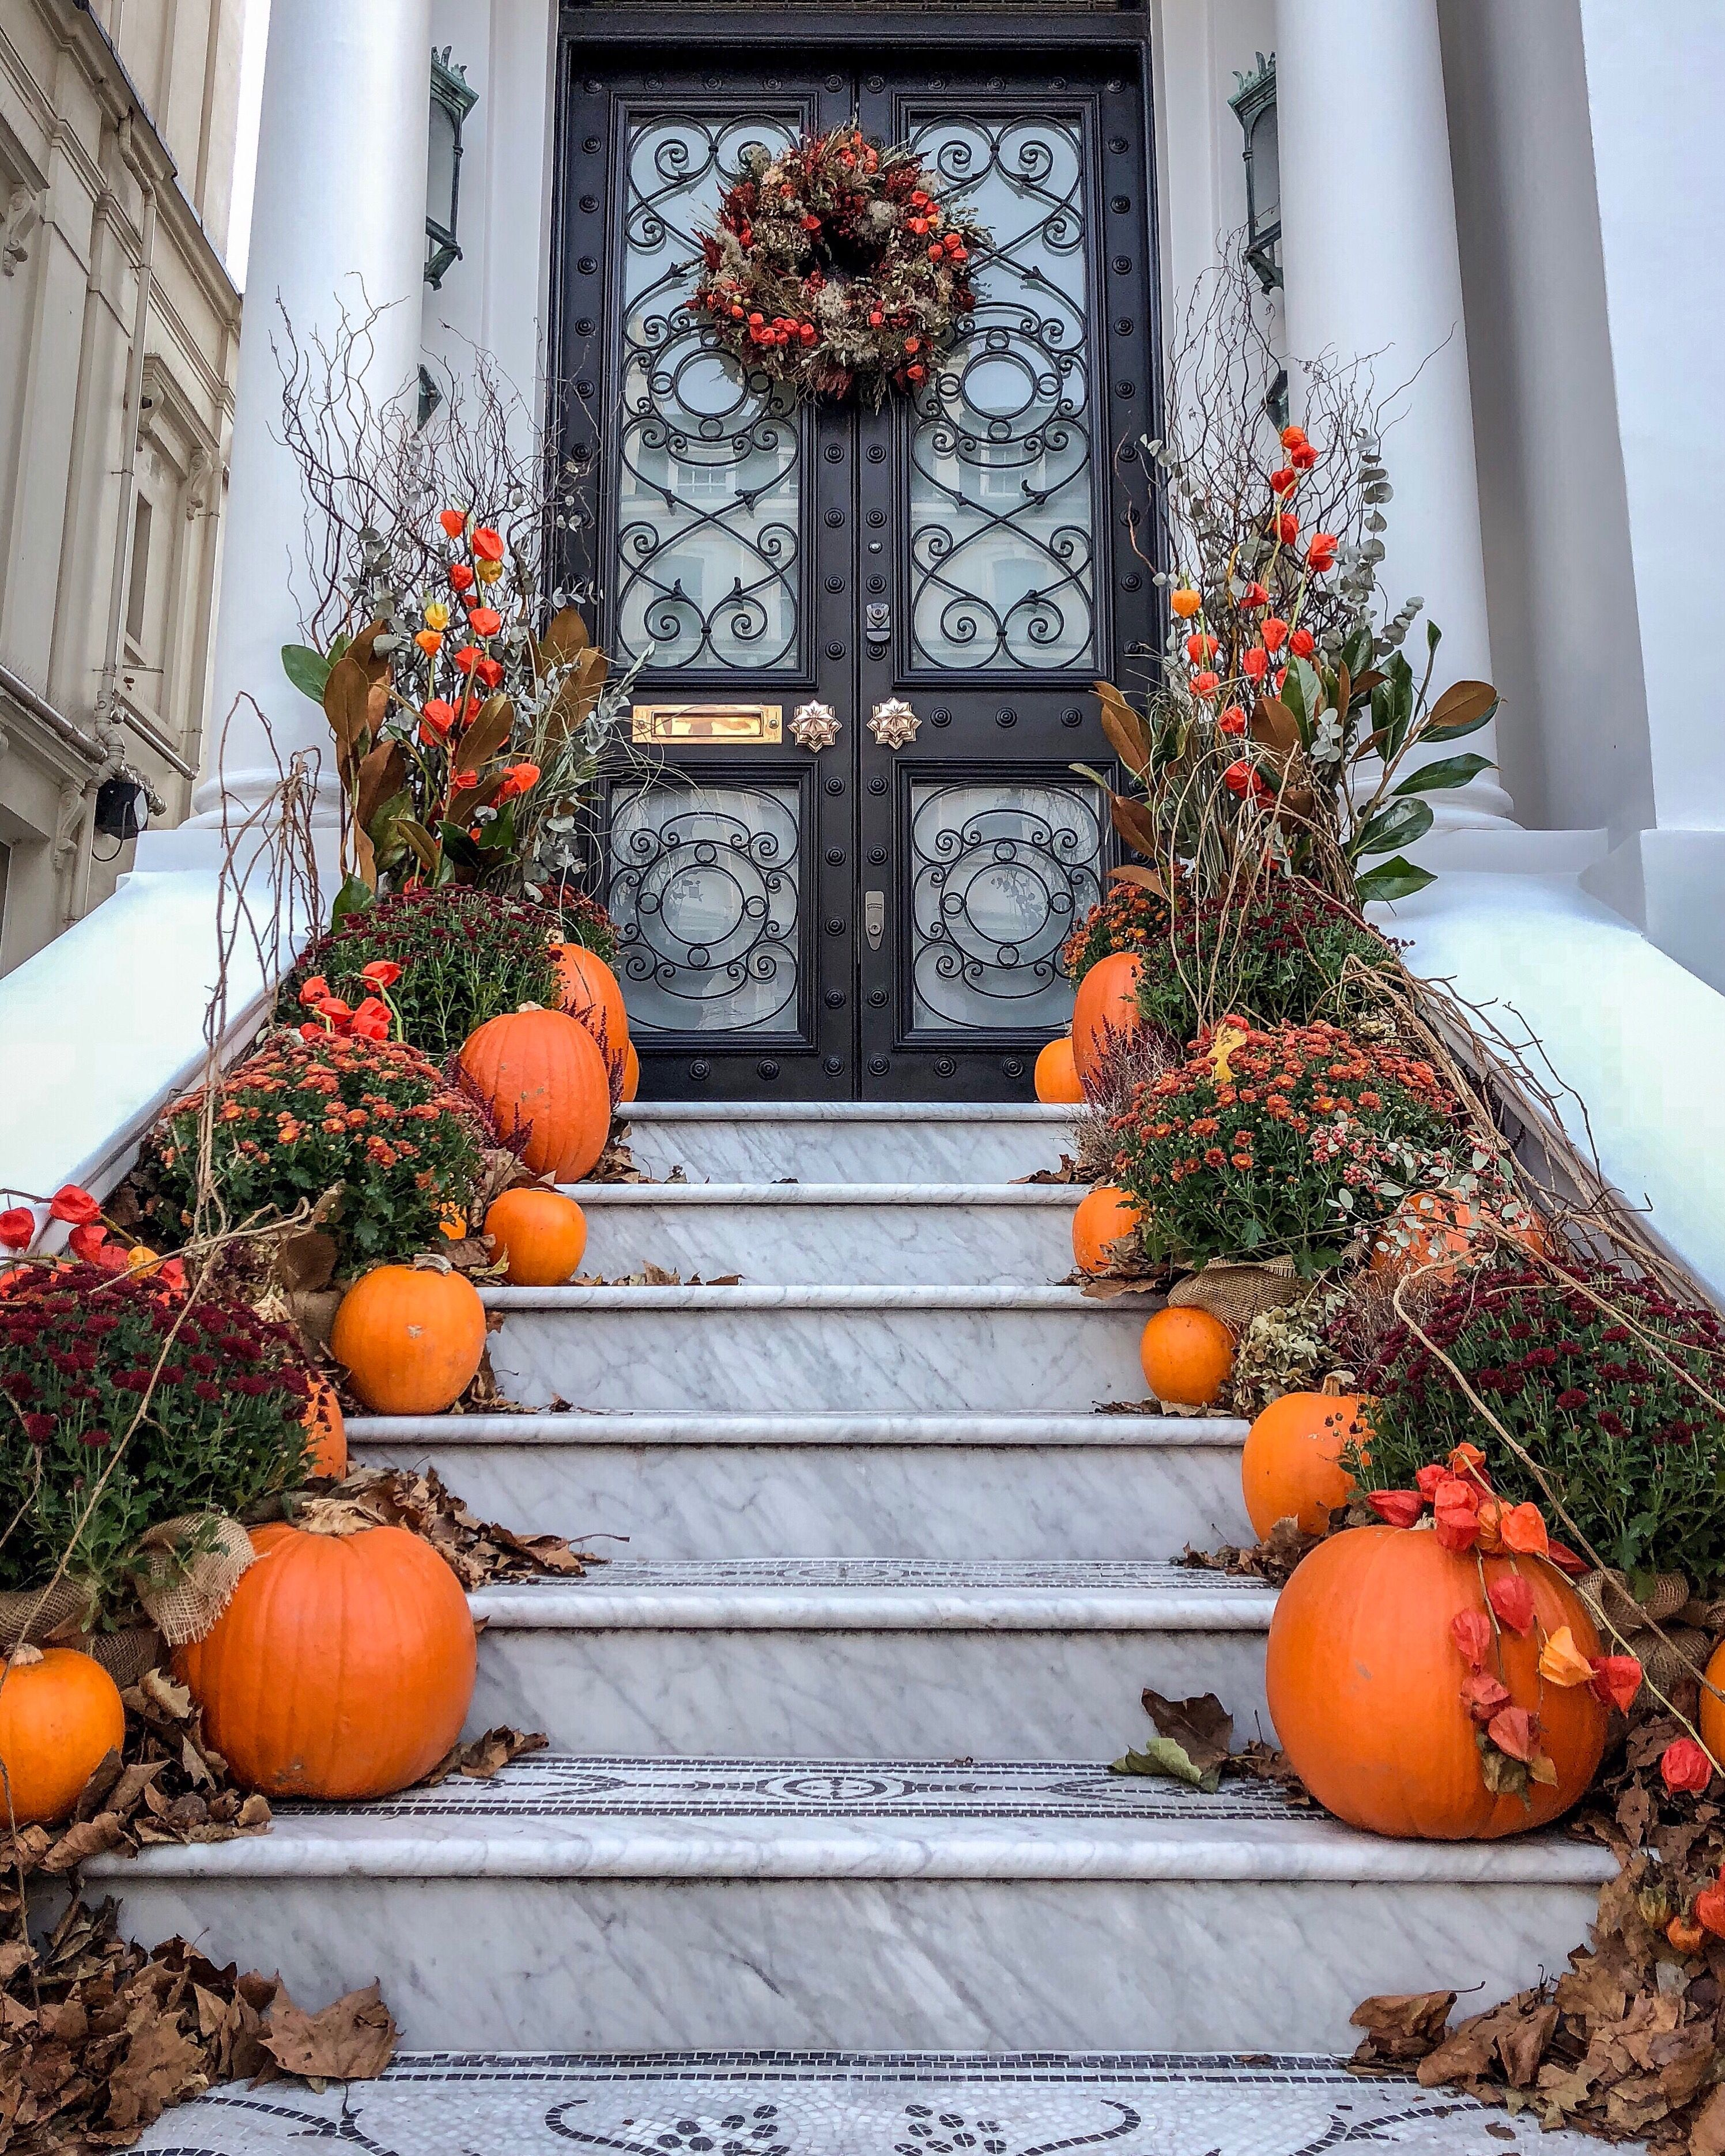 Chic Halloween Decorations On Stairs In Notting Hill London